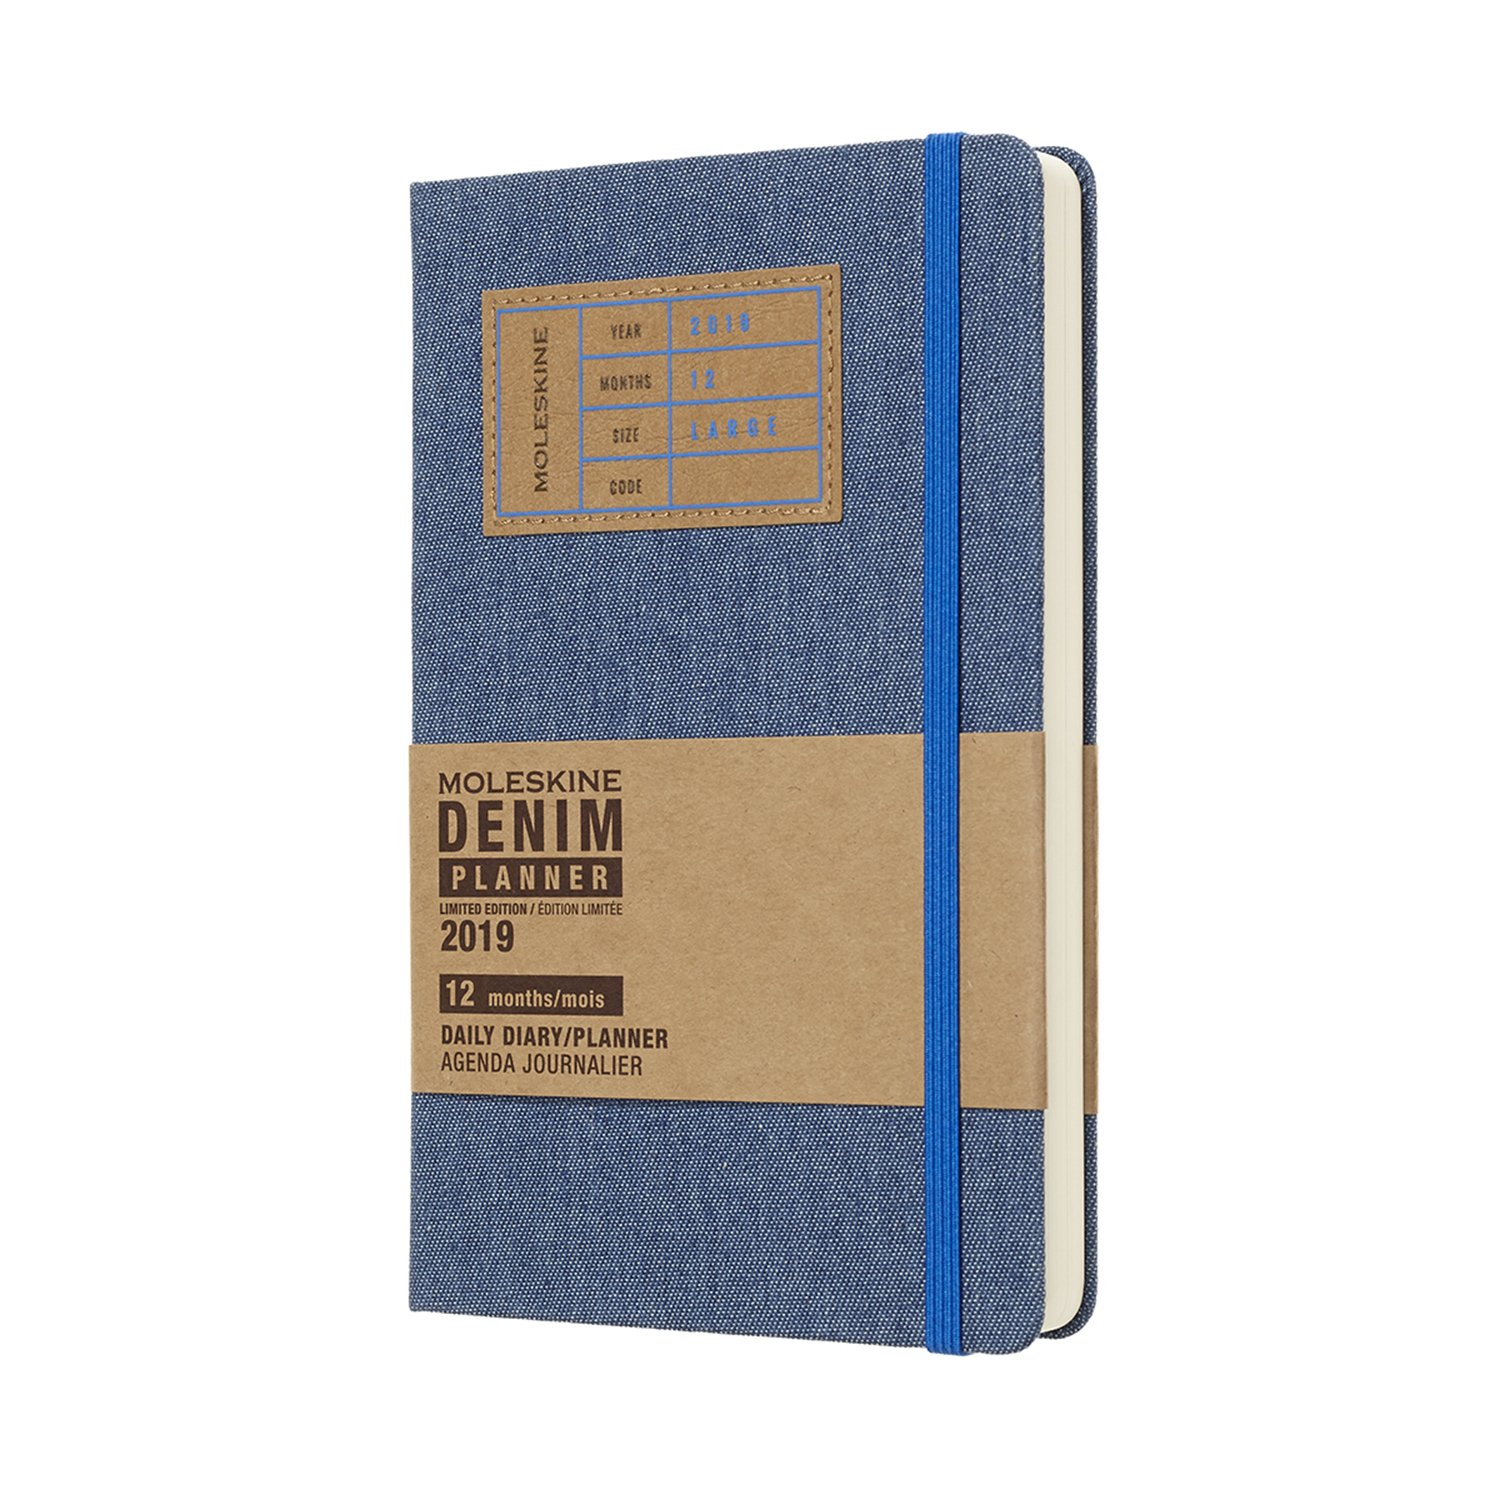 Moleskine agenda 2019 weekly/note large hardcover denim